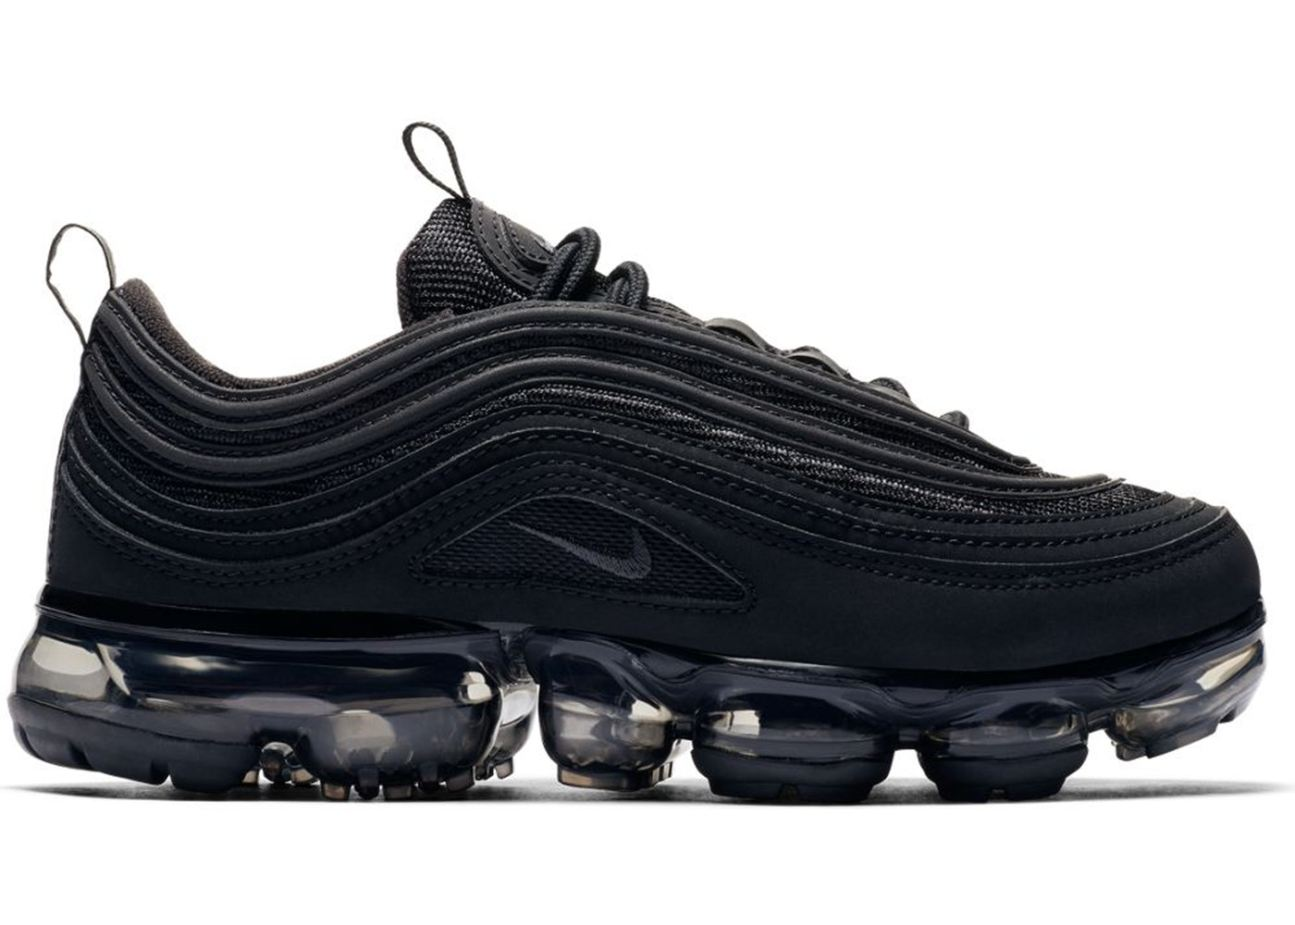 low priced abef6 18224 Nike Air VaporMax 97 'Black Reflect